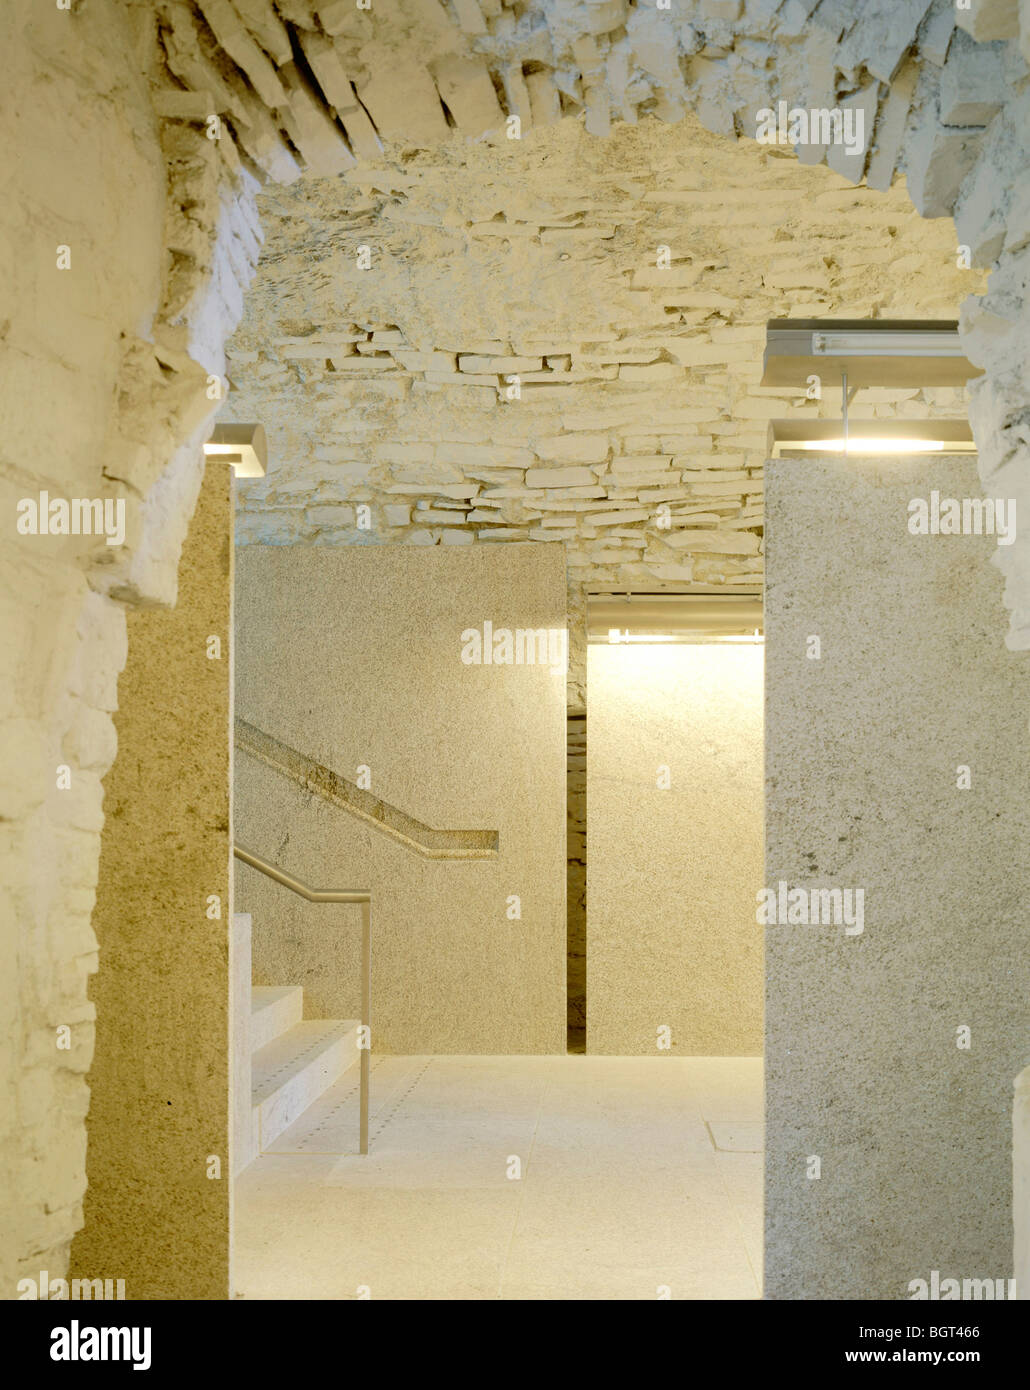 MAYNOOTH CASTLE EXHIBITION SPACE, DUBLIN, IRELAND, DE BLACAM AND MEAGHER - Stock Image